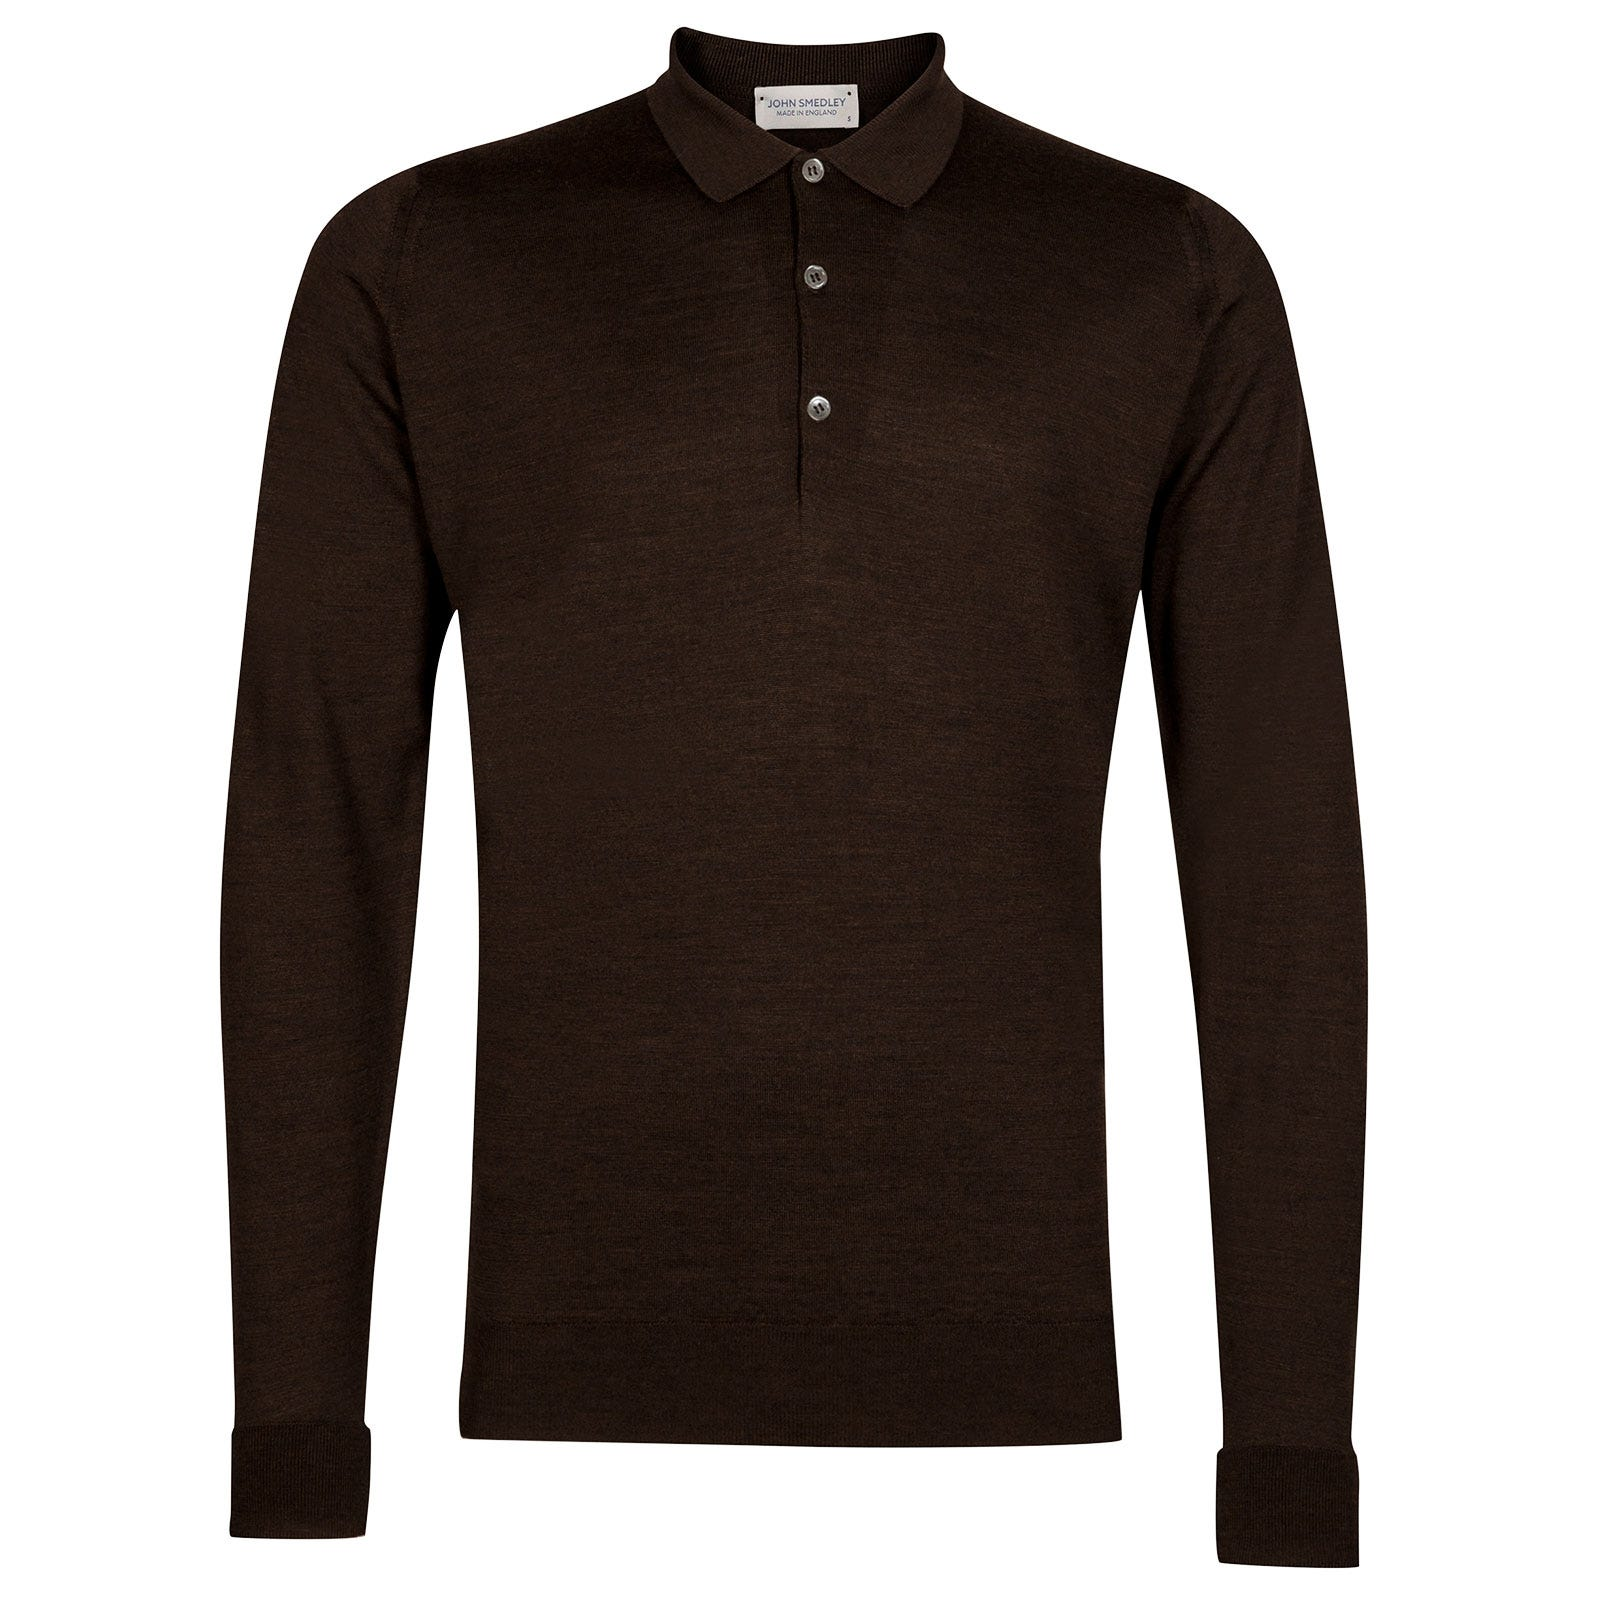 John Smedley Cotswold Merino Wool Shirt in Chestnut-S